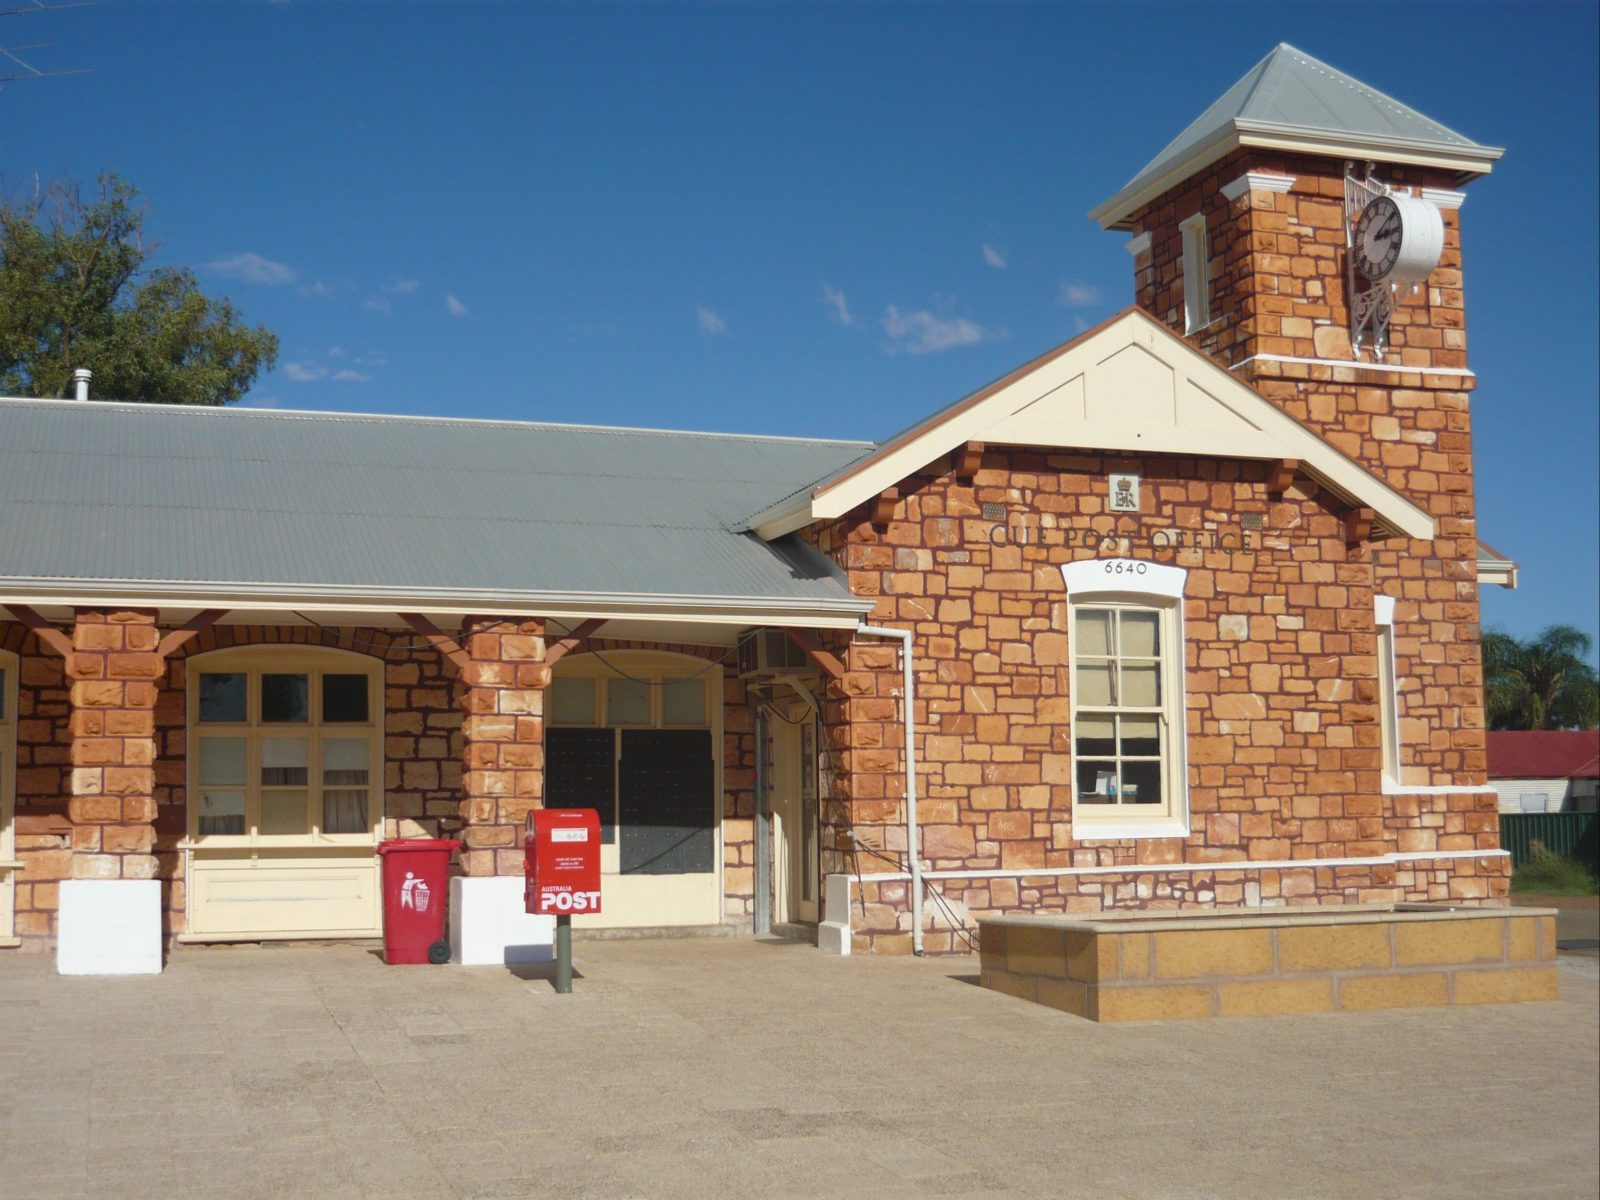 Cue Community Resource Centre, Cue, Western Australia